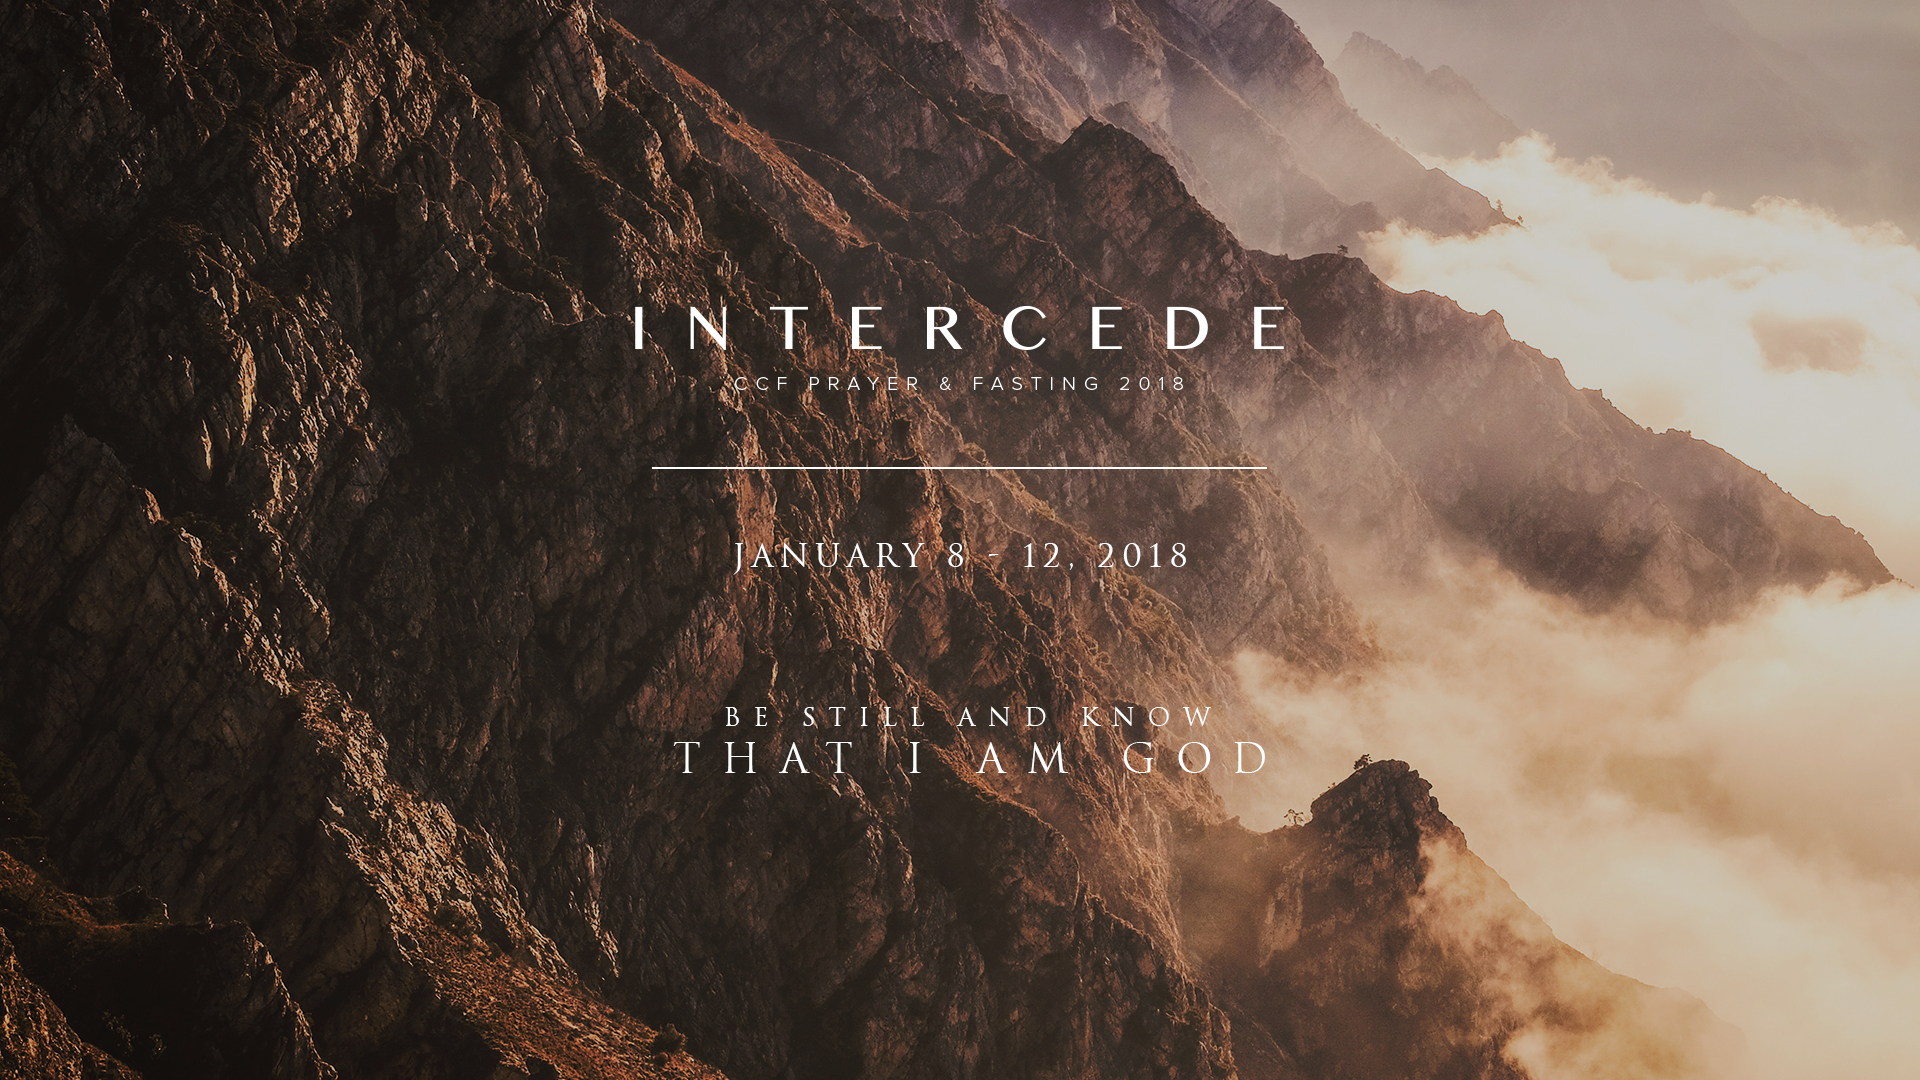 intercede-fb-01_02